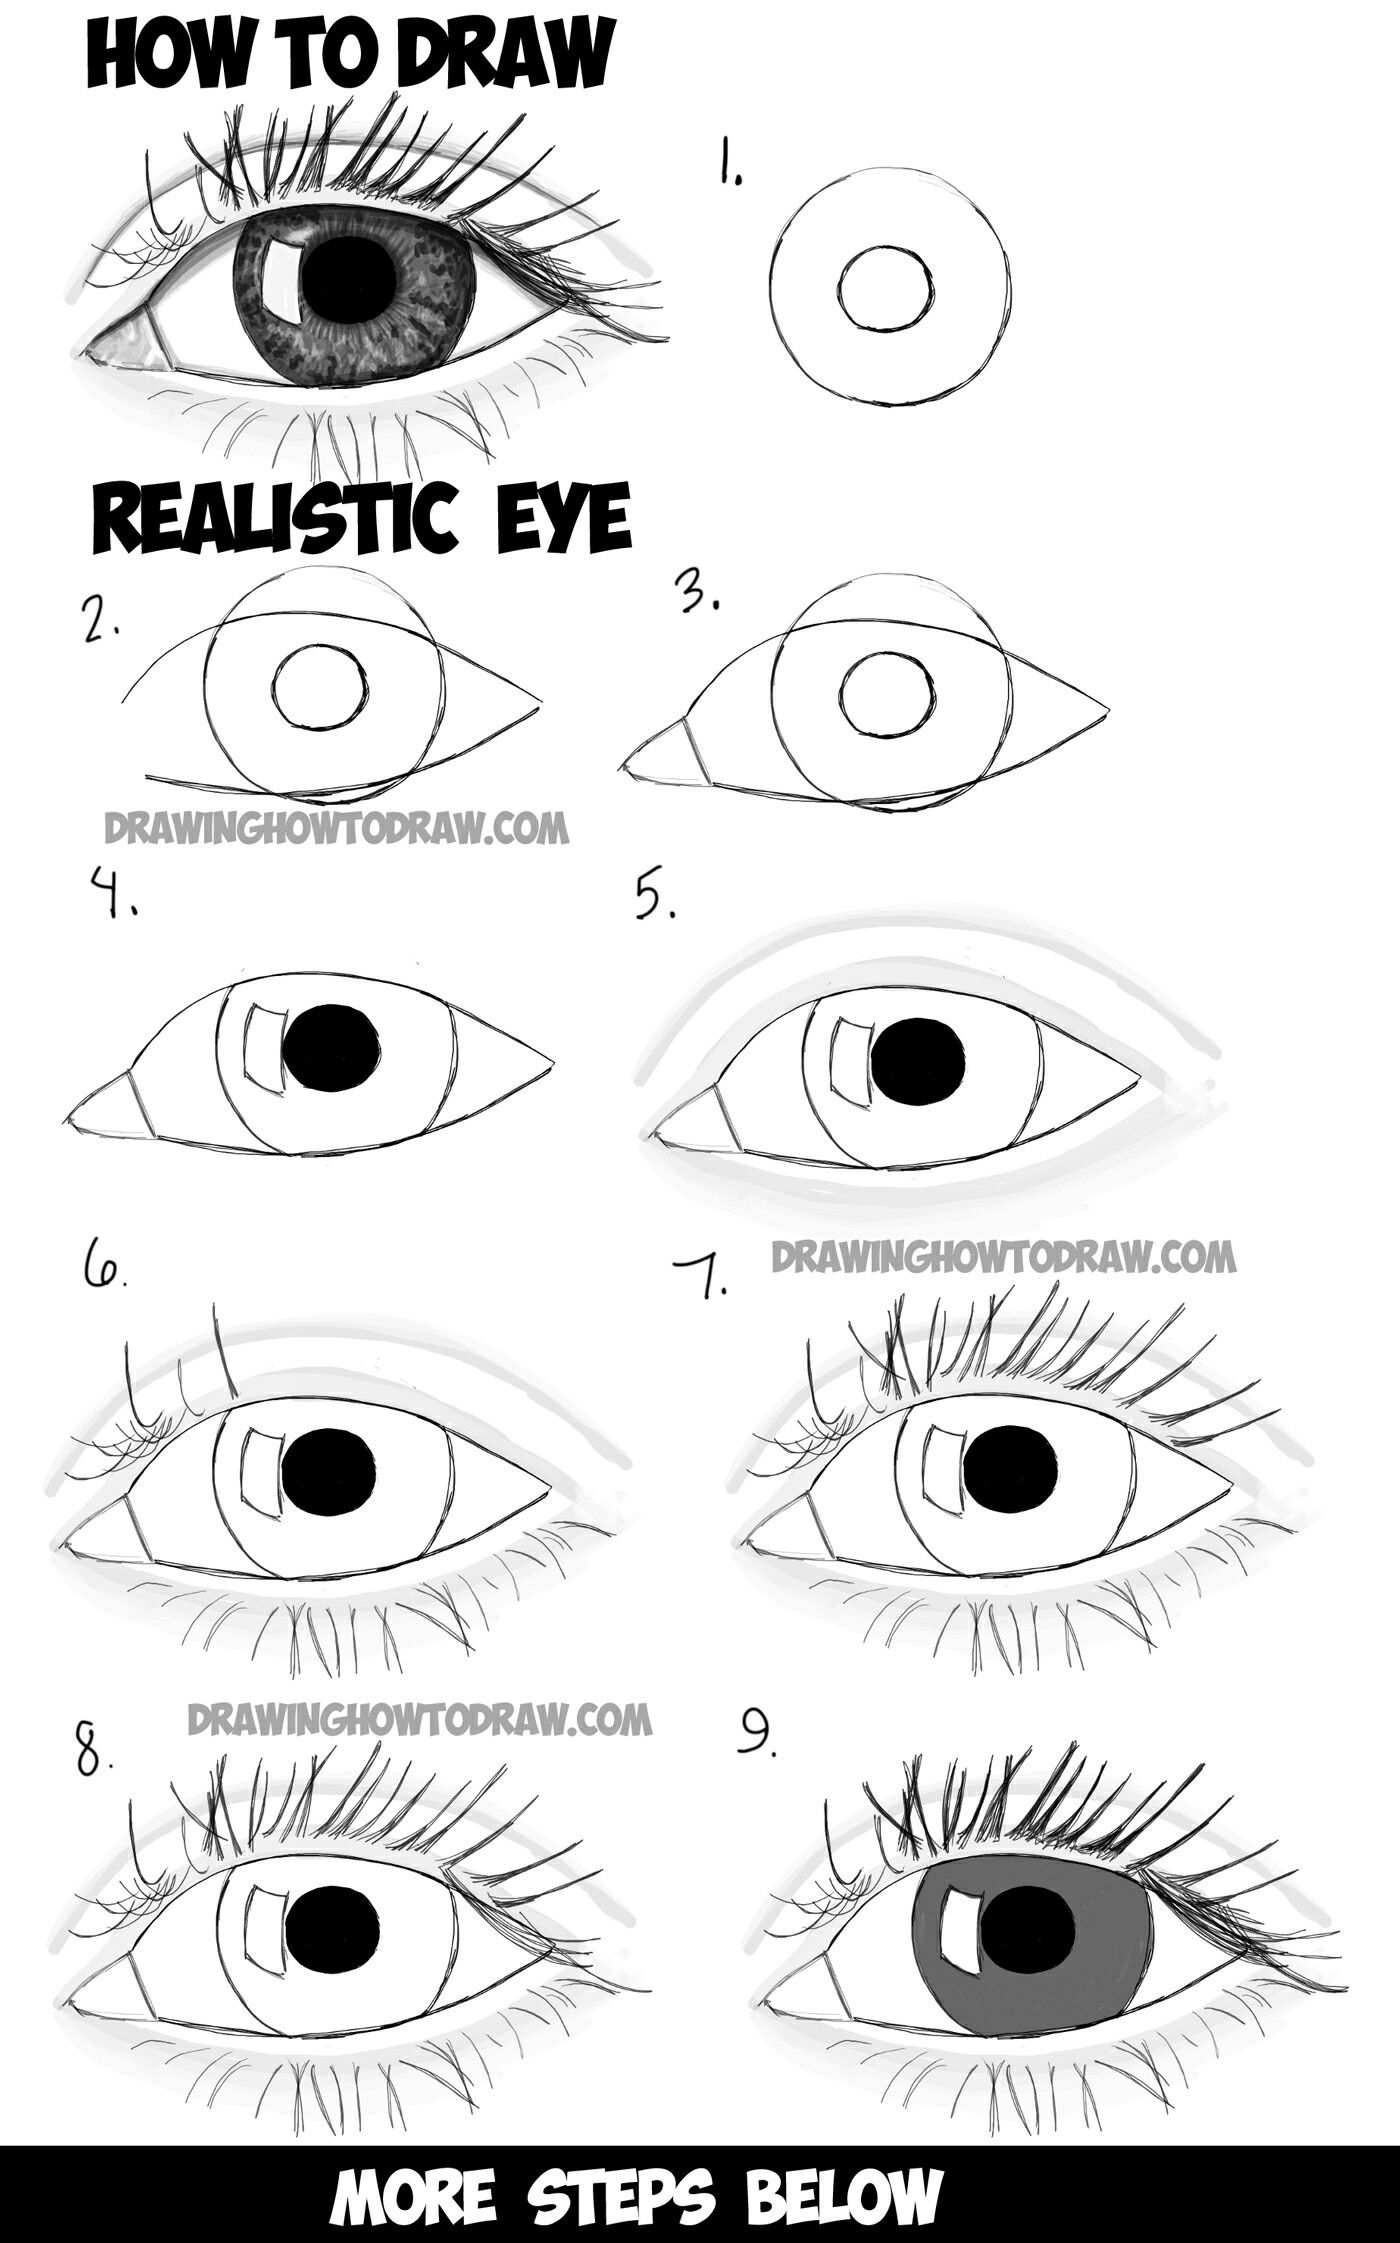 Realistic eye easy eye drawing easy drawing tutorial eye tutorial drawing step